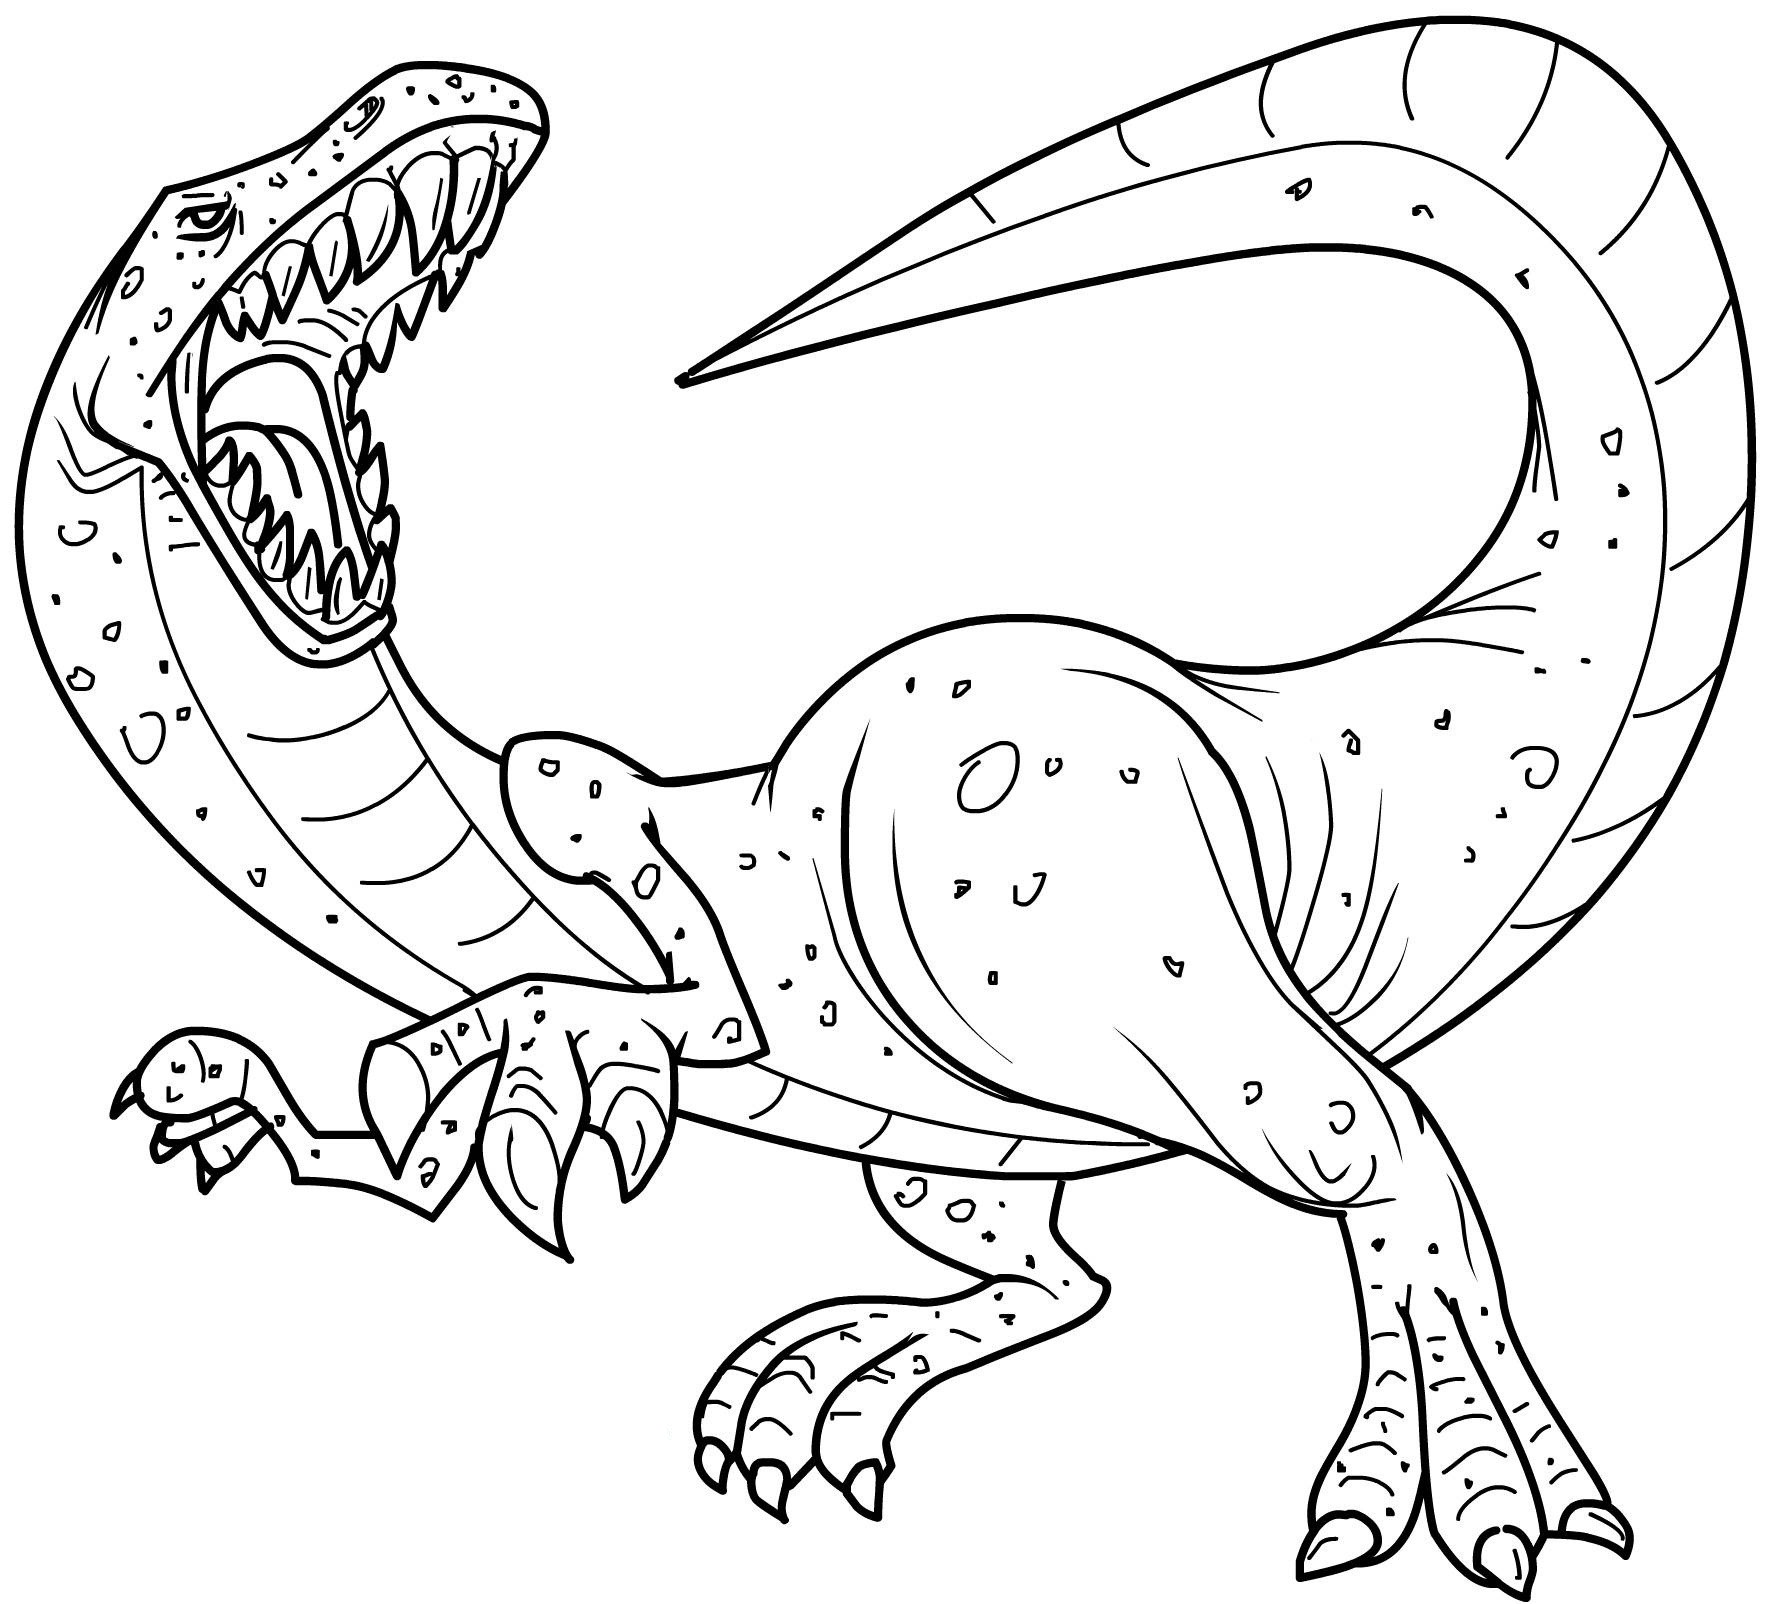 dinasour coloring pages dinosaur coloring pages printable photo gallery babycenter pages coloring dinasour